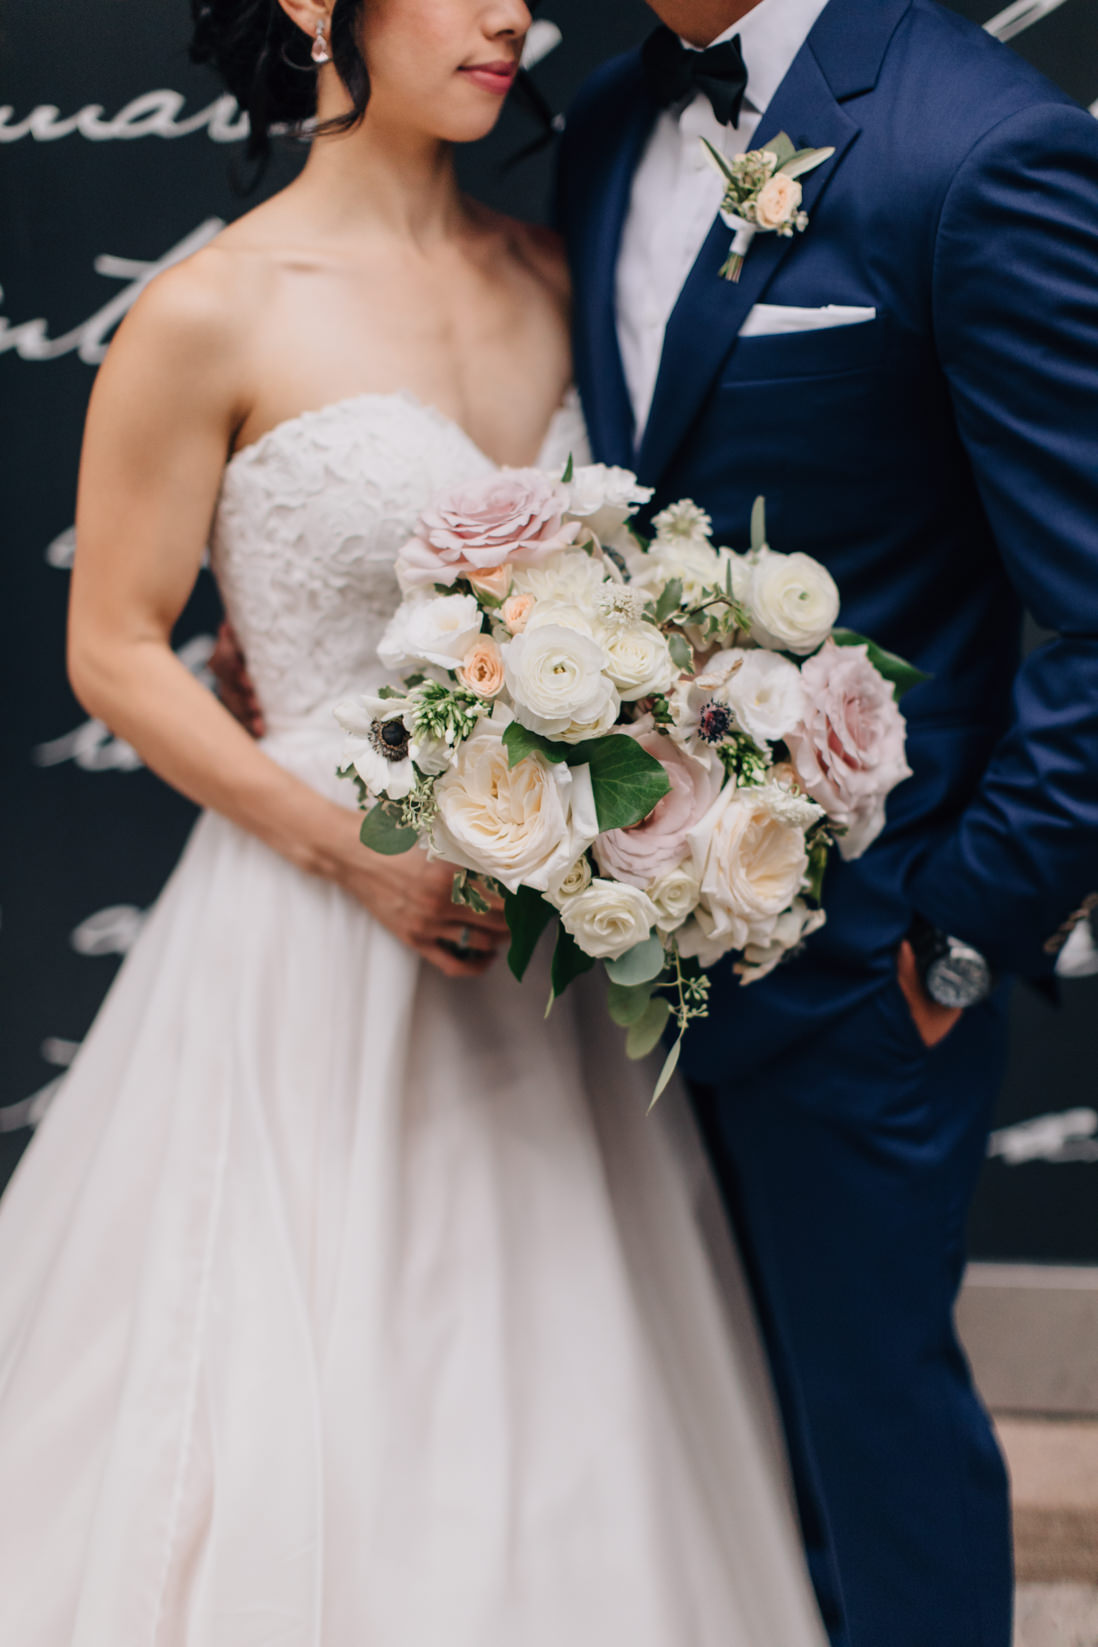 Floral detail blush and cream wedding bouquet and boutonniere Flower597 Toronto Wedding Photographer Eighty FifthStreet Photography